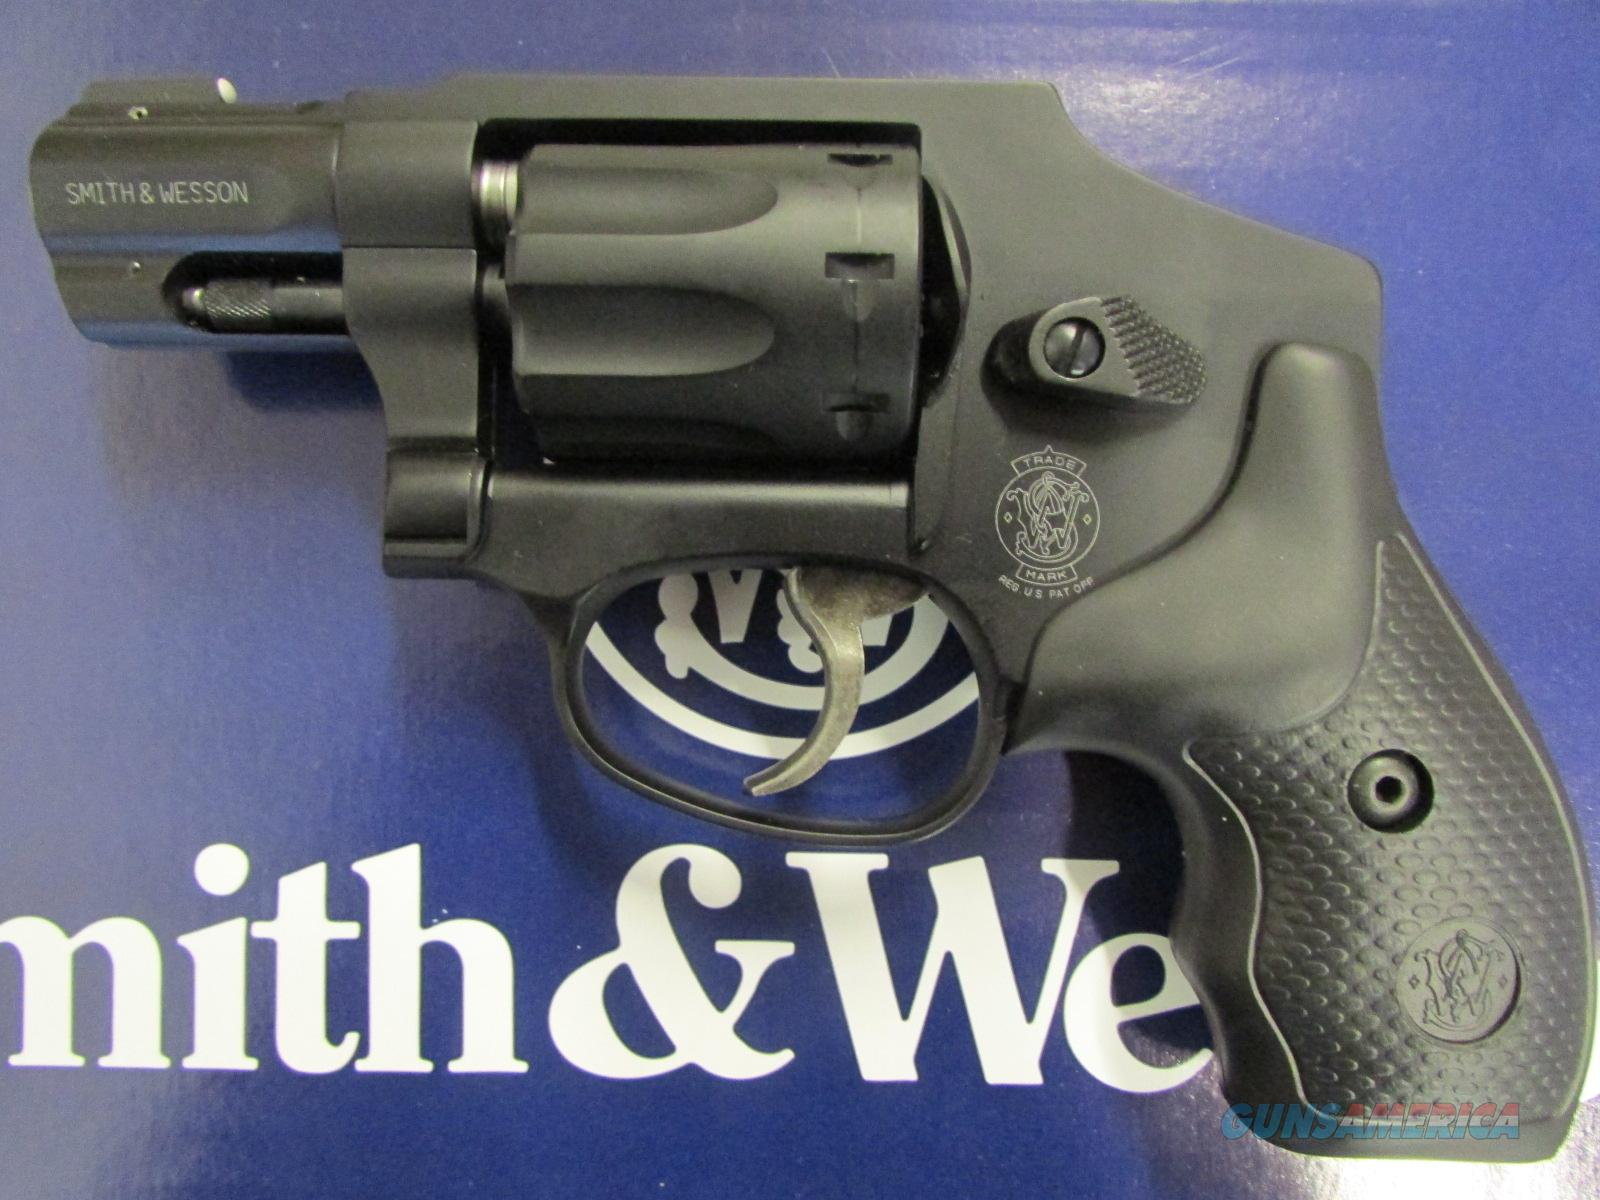 Smith & Wesson Model 43 C 8-Shot .22 LR AirWeight Revolver 103043  Guns > Pistols > Smith & Wesson Revolvers > Pocket Pistols